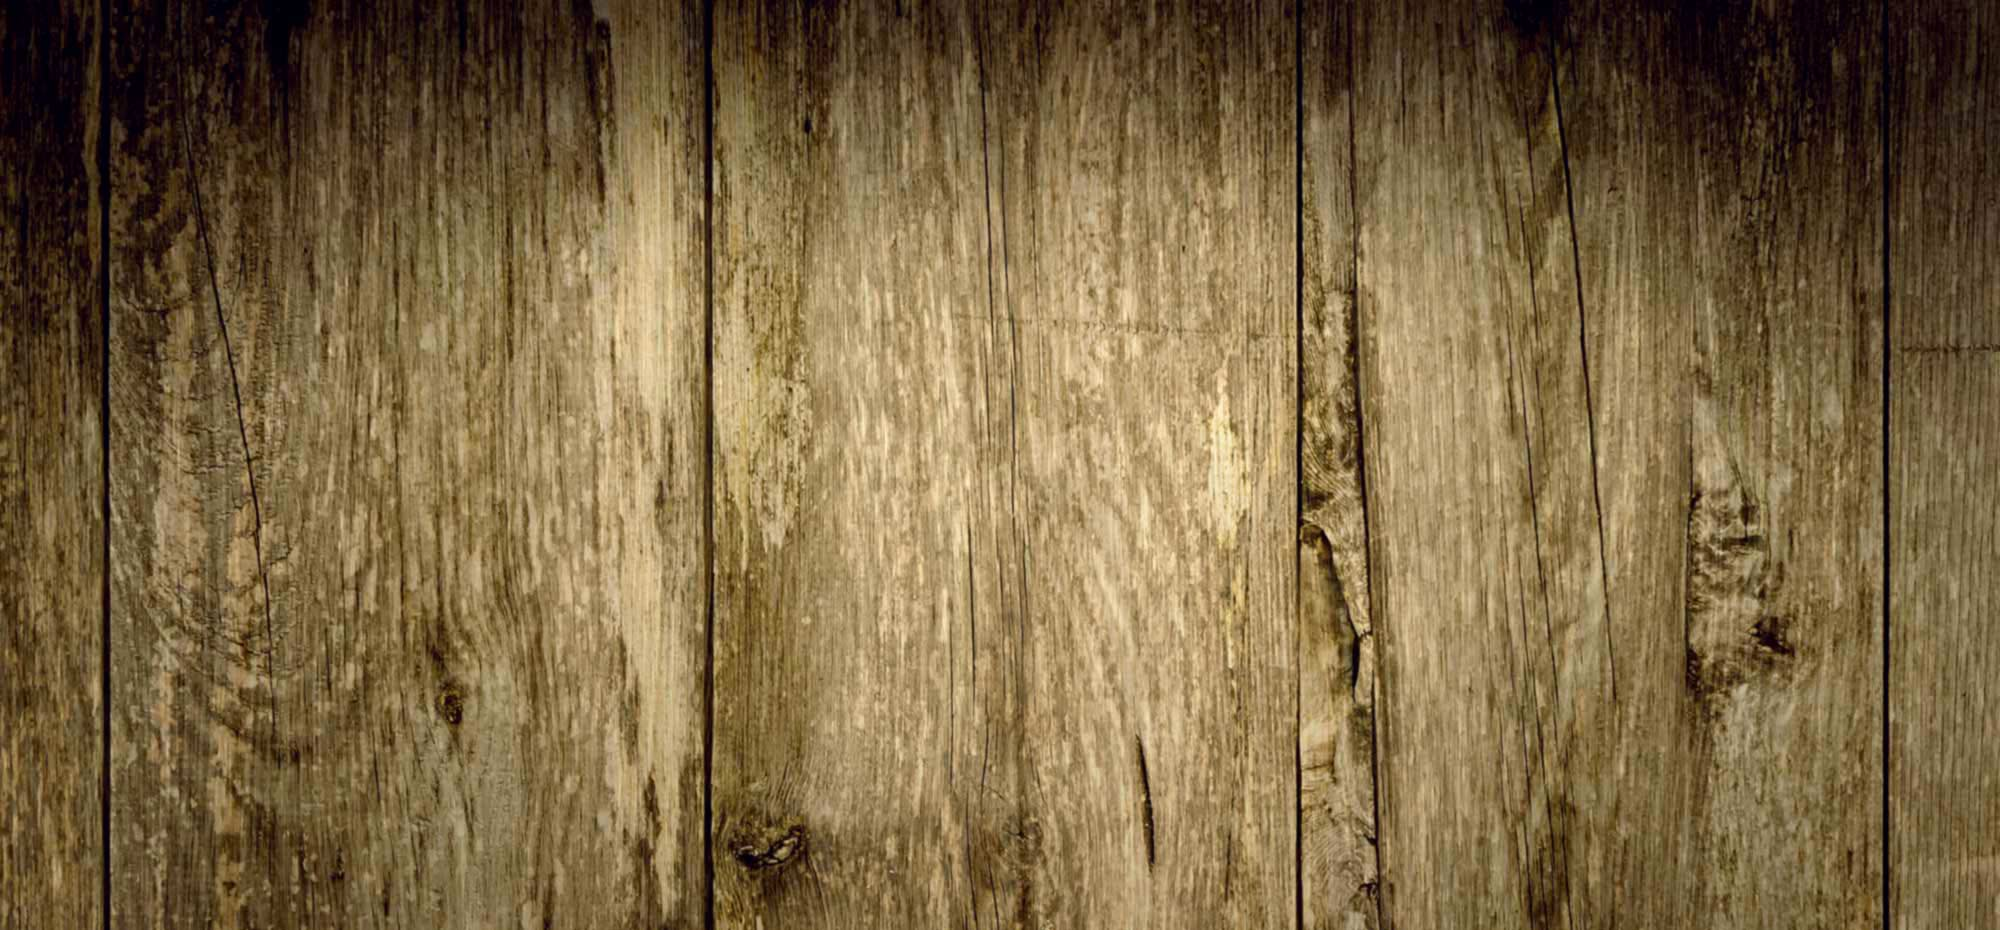 Barn-Board-Background